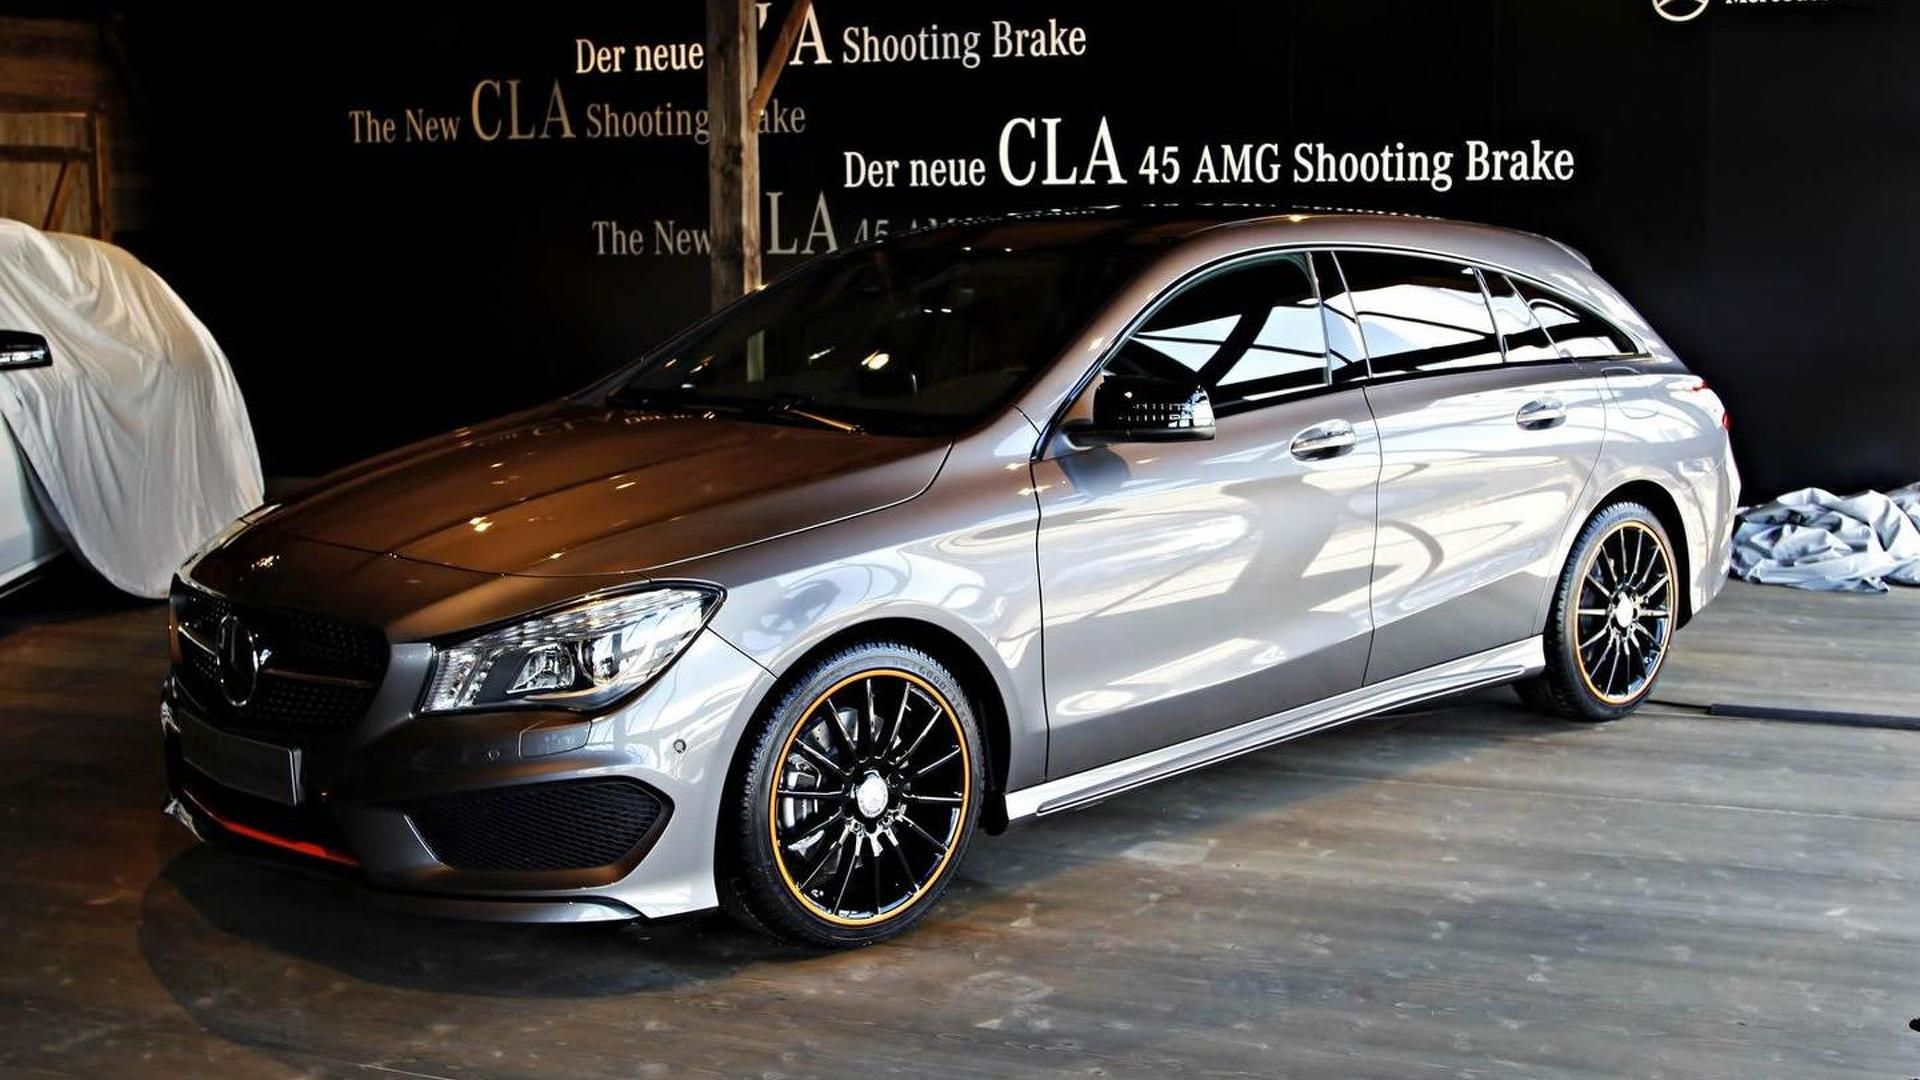 Mercedes Benz CLA Shooting Brake returns in live images 1920x1080